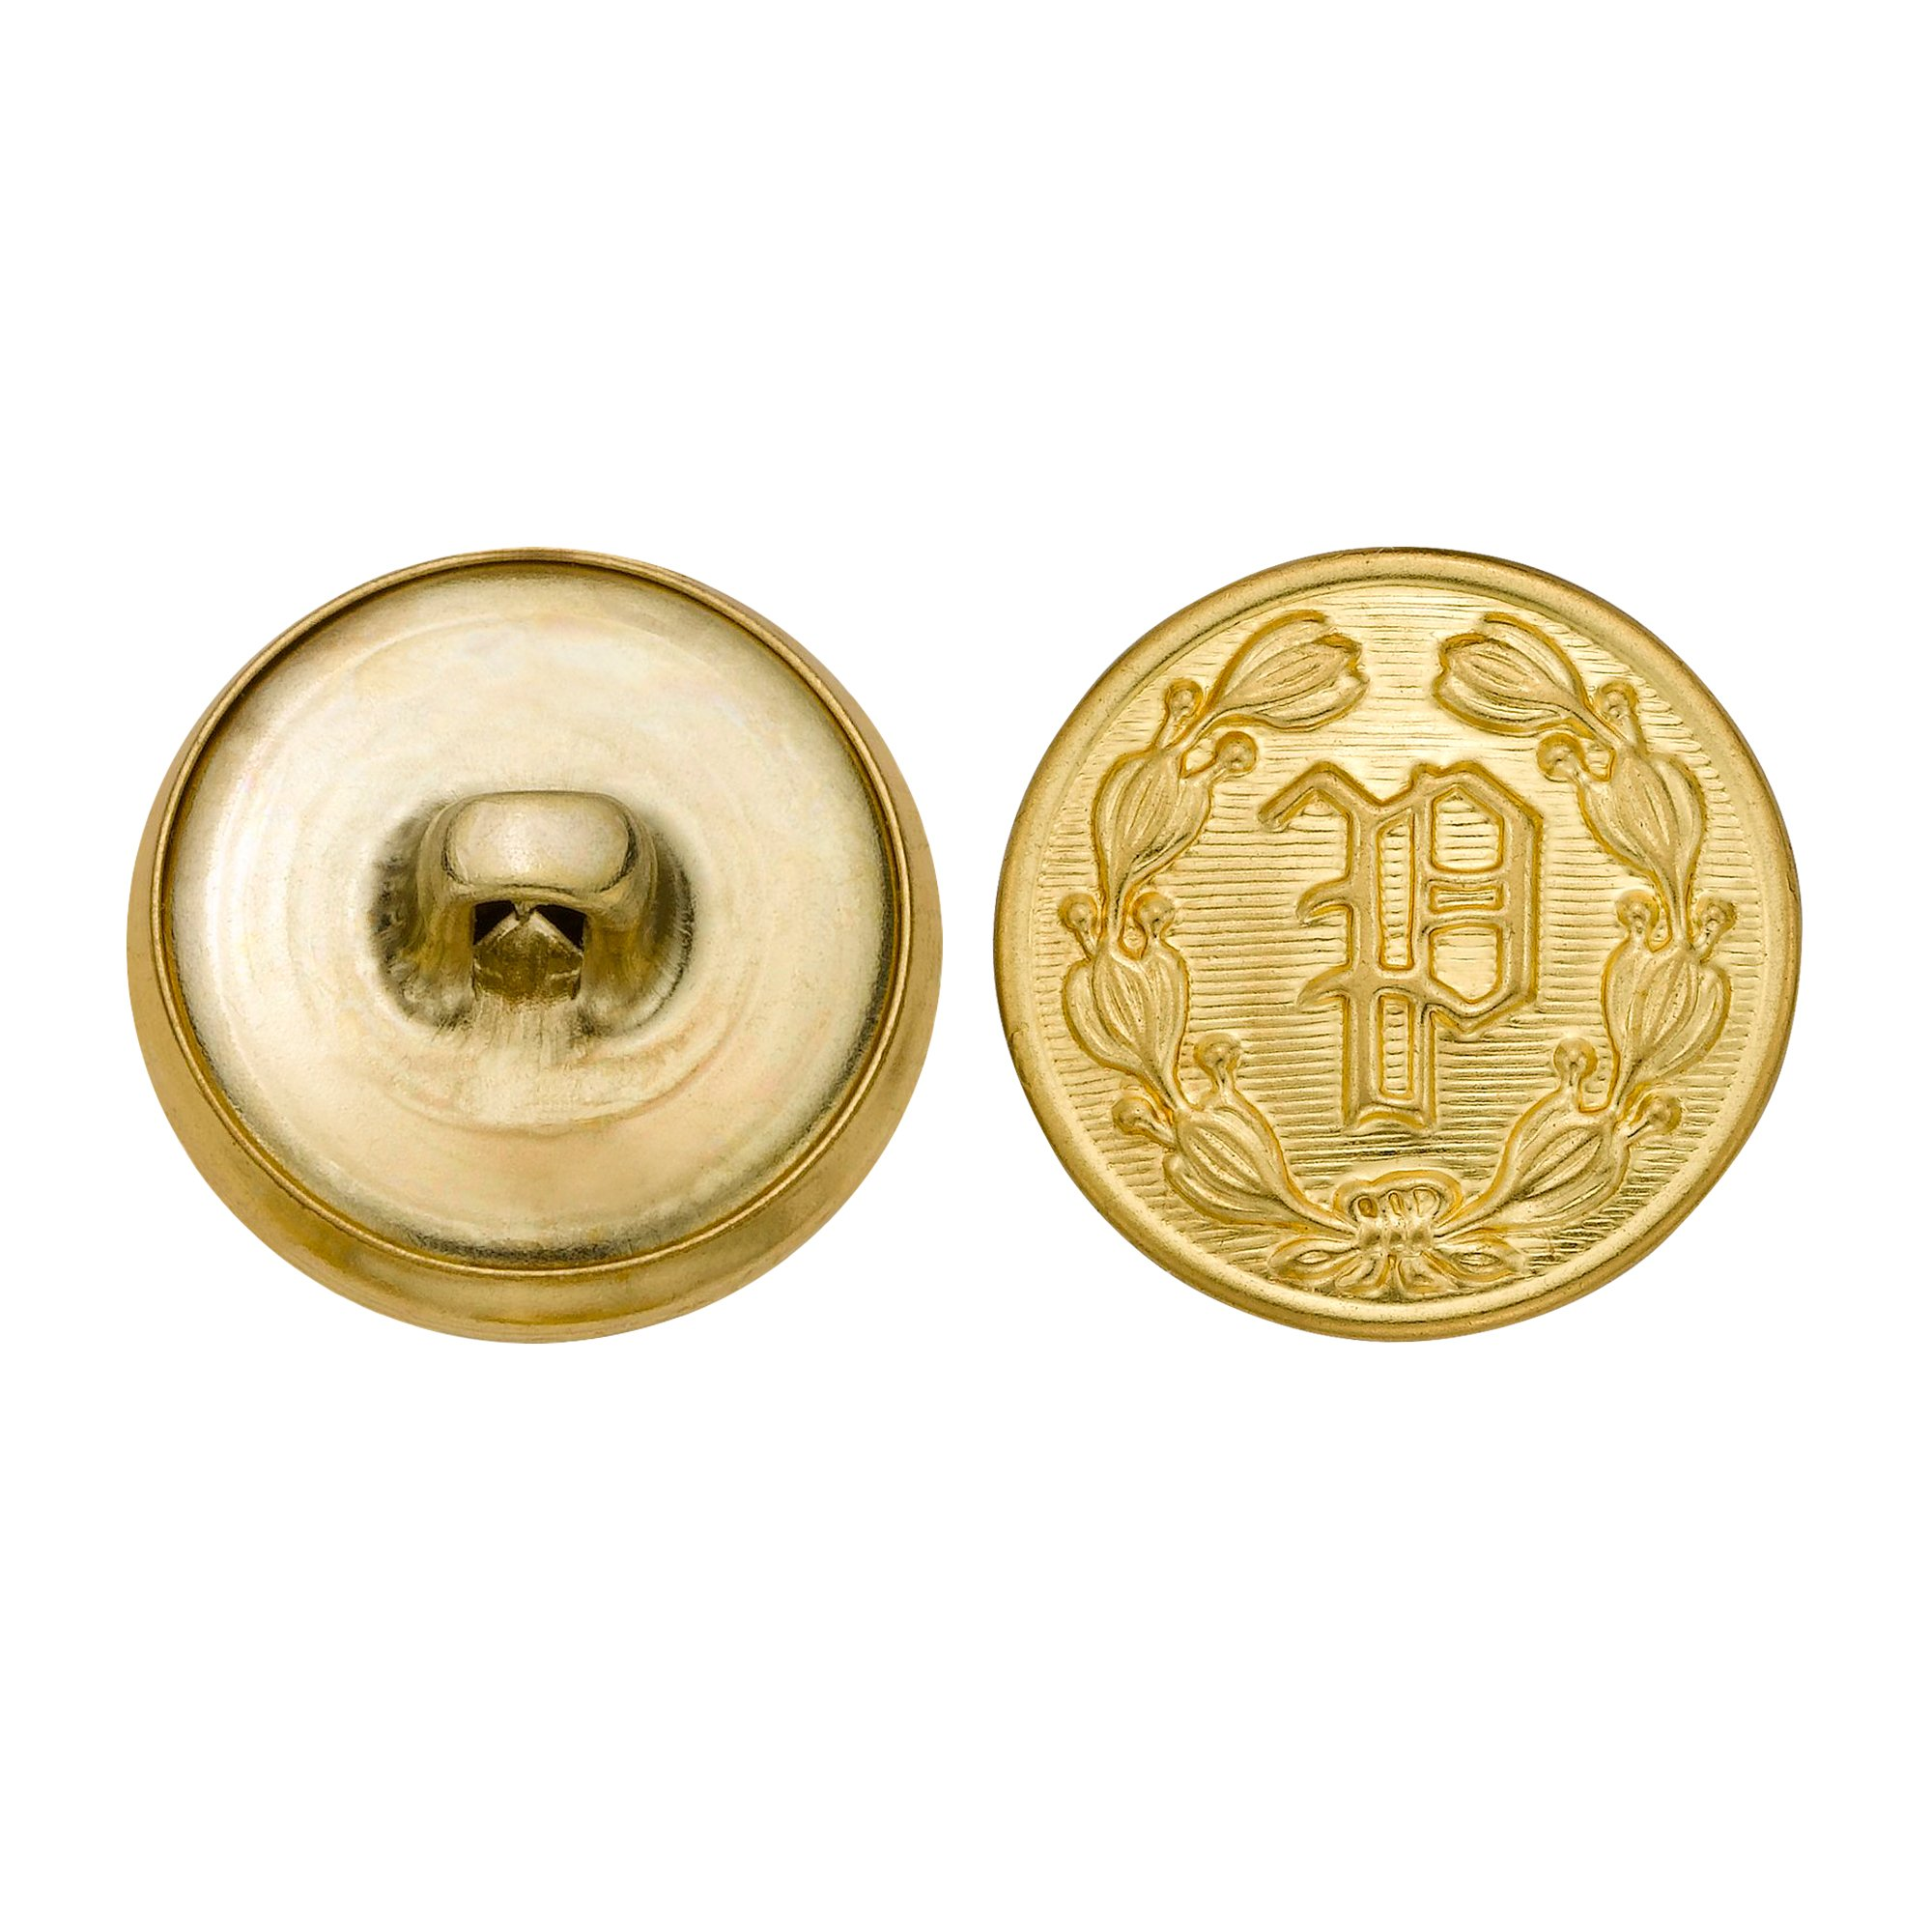 C&C Metal Products 5202 Police P Metal Button, Size 30 Ligne, Gold, 36-Pack